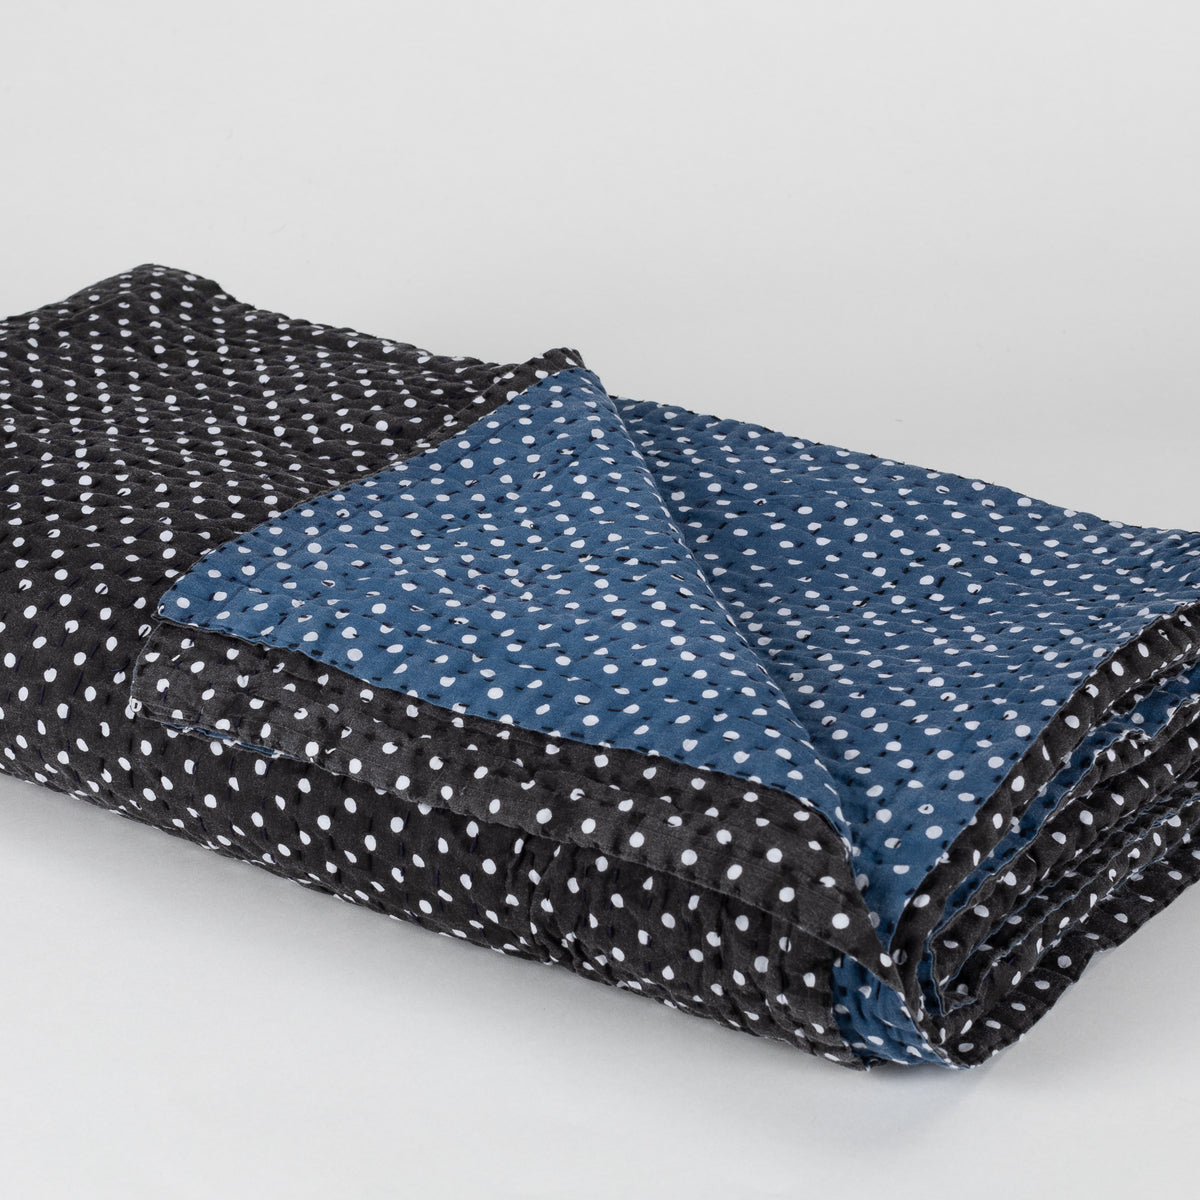 Load image into Gallery viewer, Printed Reversible Polka Dot Quilt